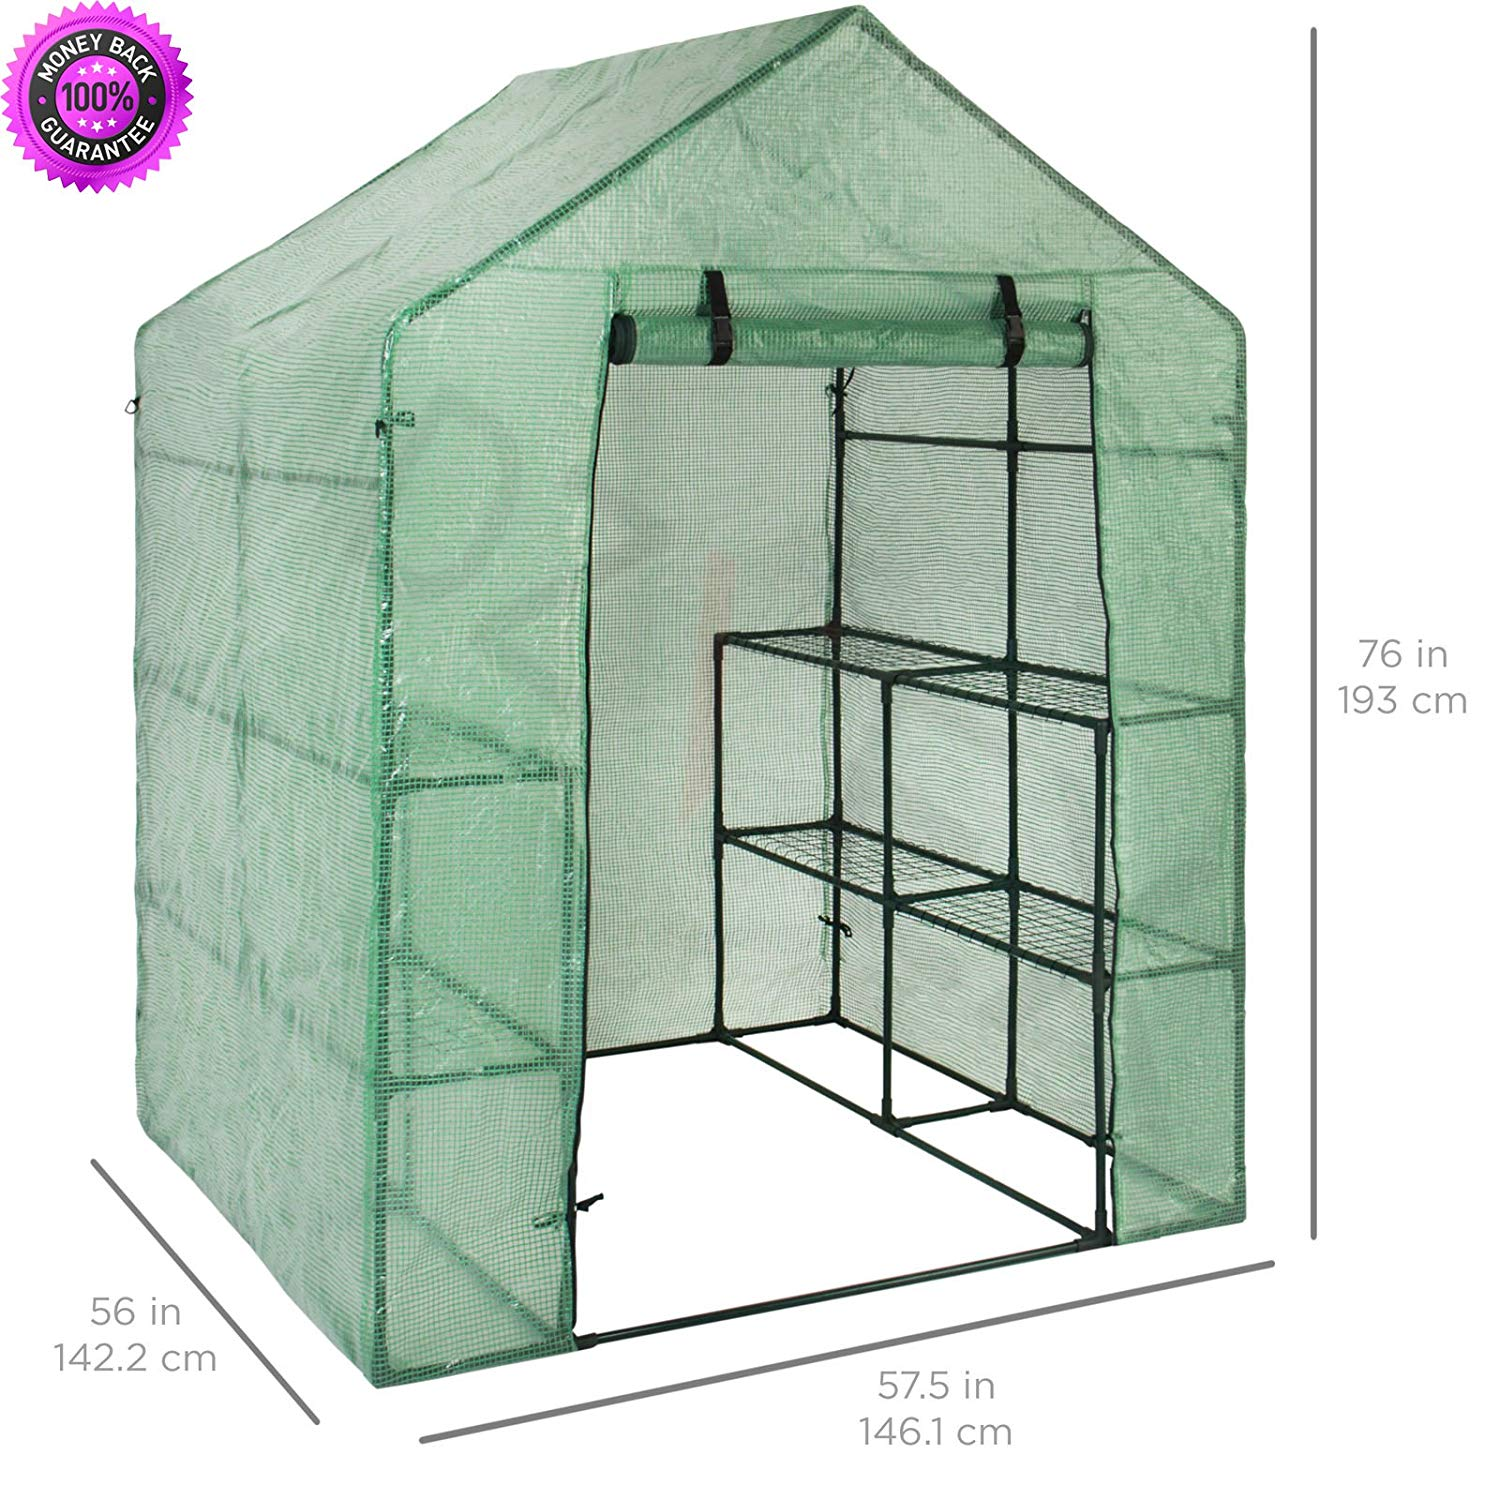 Cheap Pvc Frame Greenhouse Plans, find Pvc Frame Greenhouse Plans